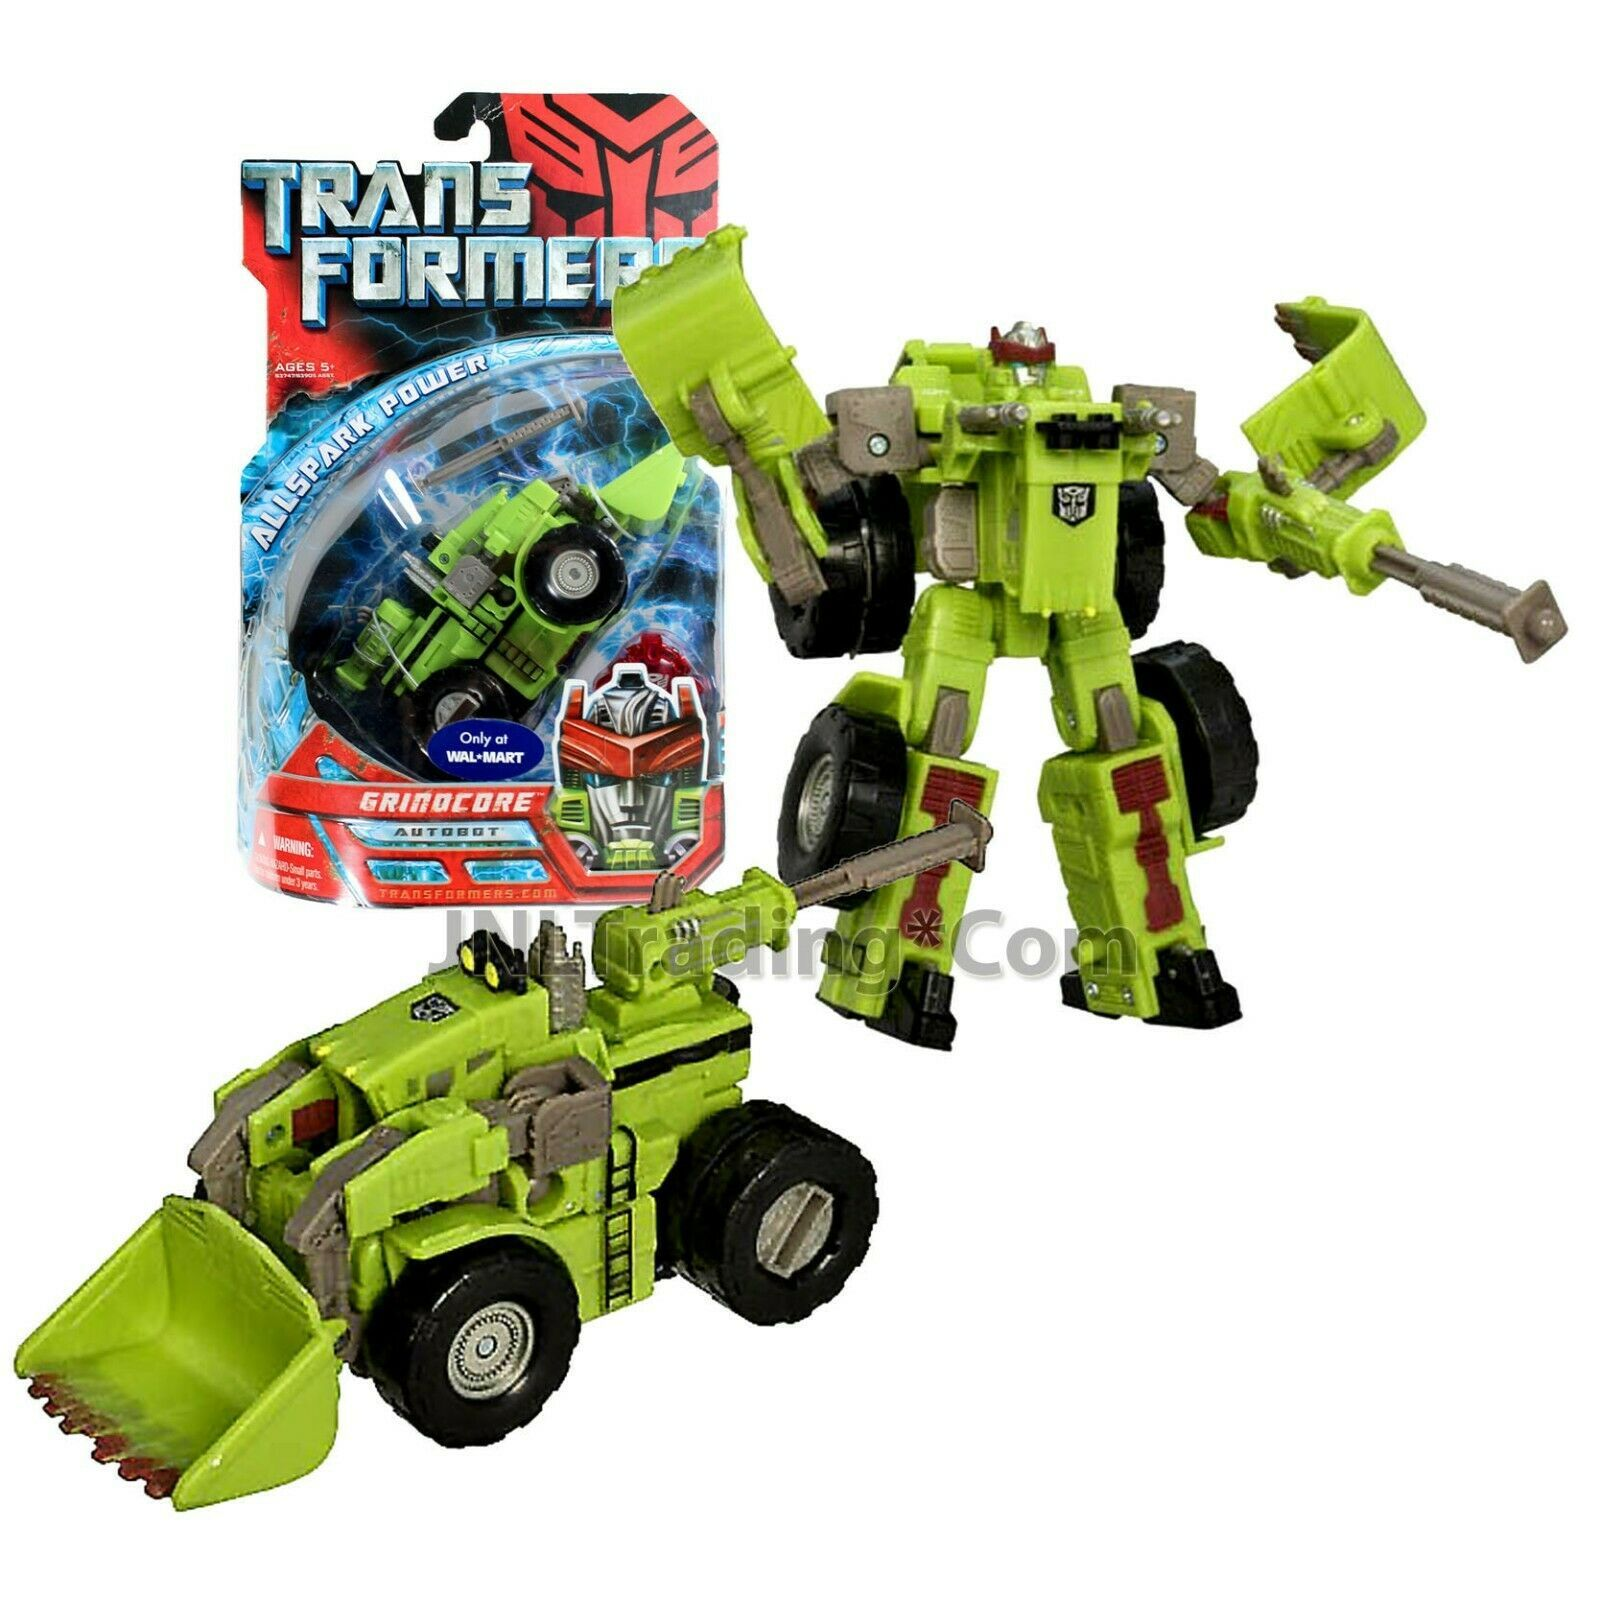 """Year 2007 Transformers 1st Movie All Spark Power Deluxe Class 6"""" Fig GRINDCORE"""